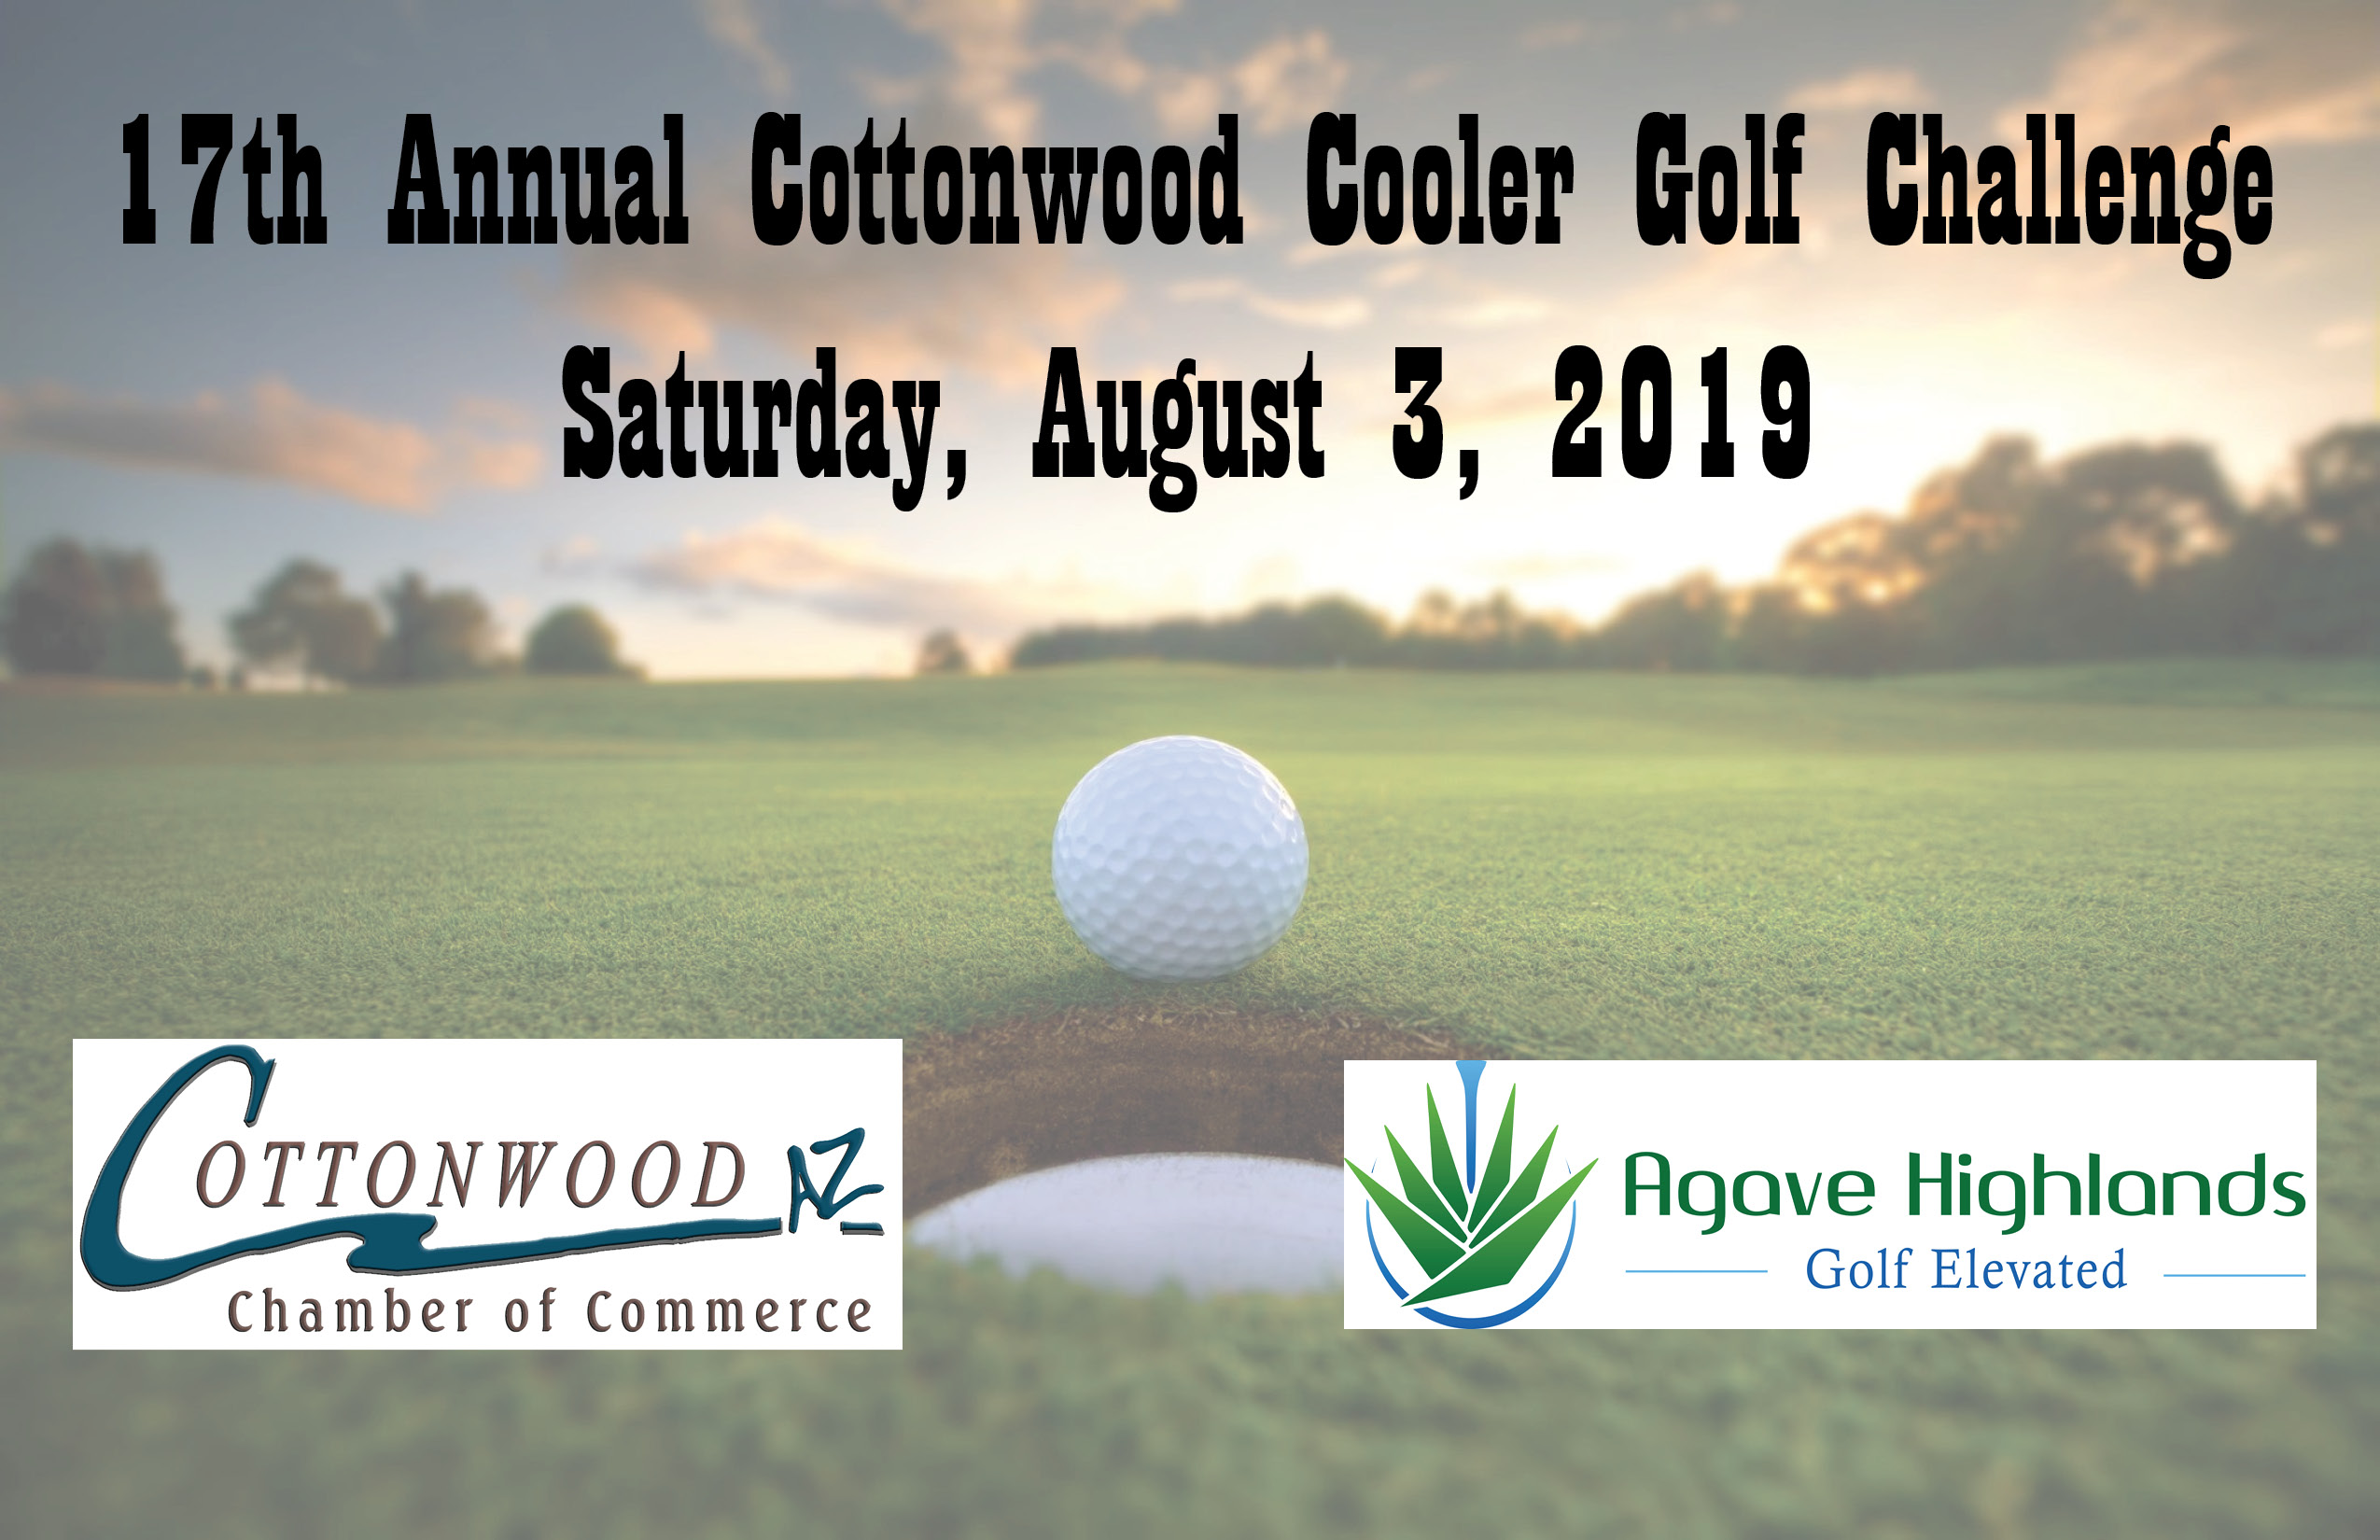 17th Annual Cottonwood Cooler Golf Challenge